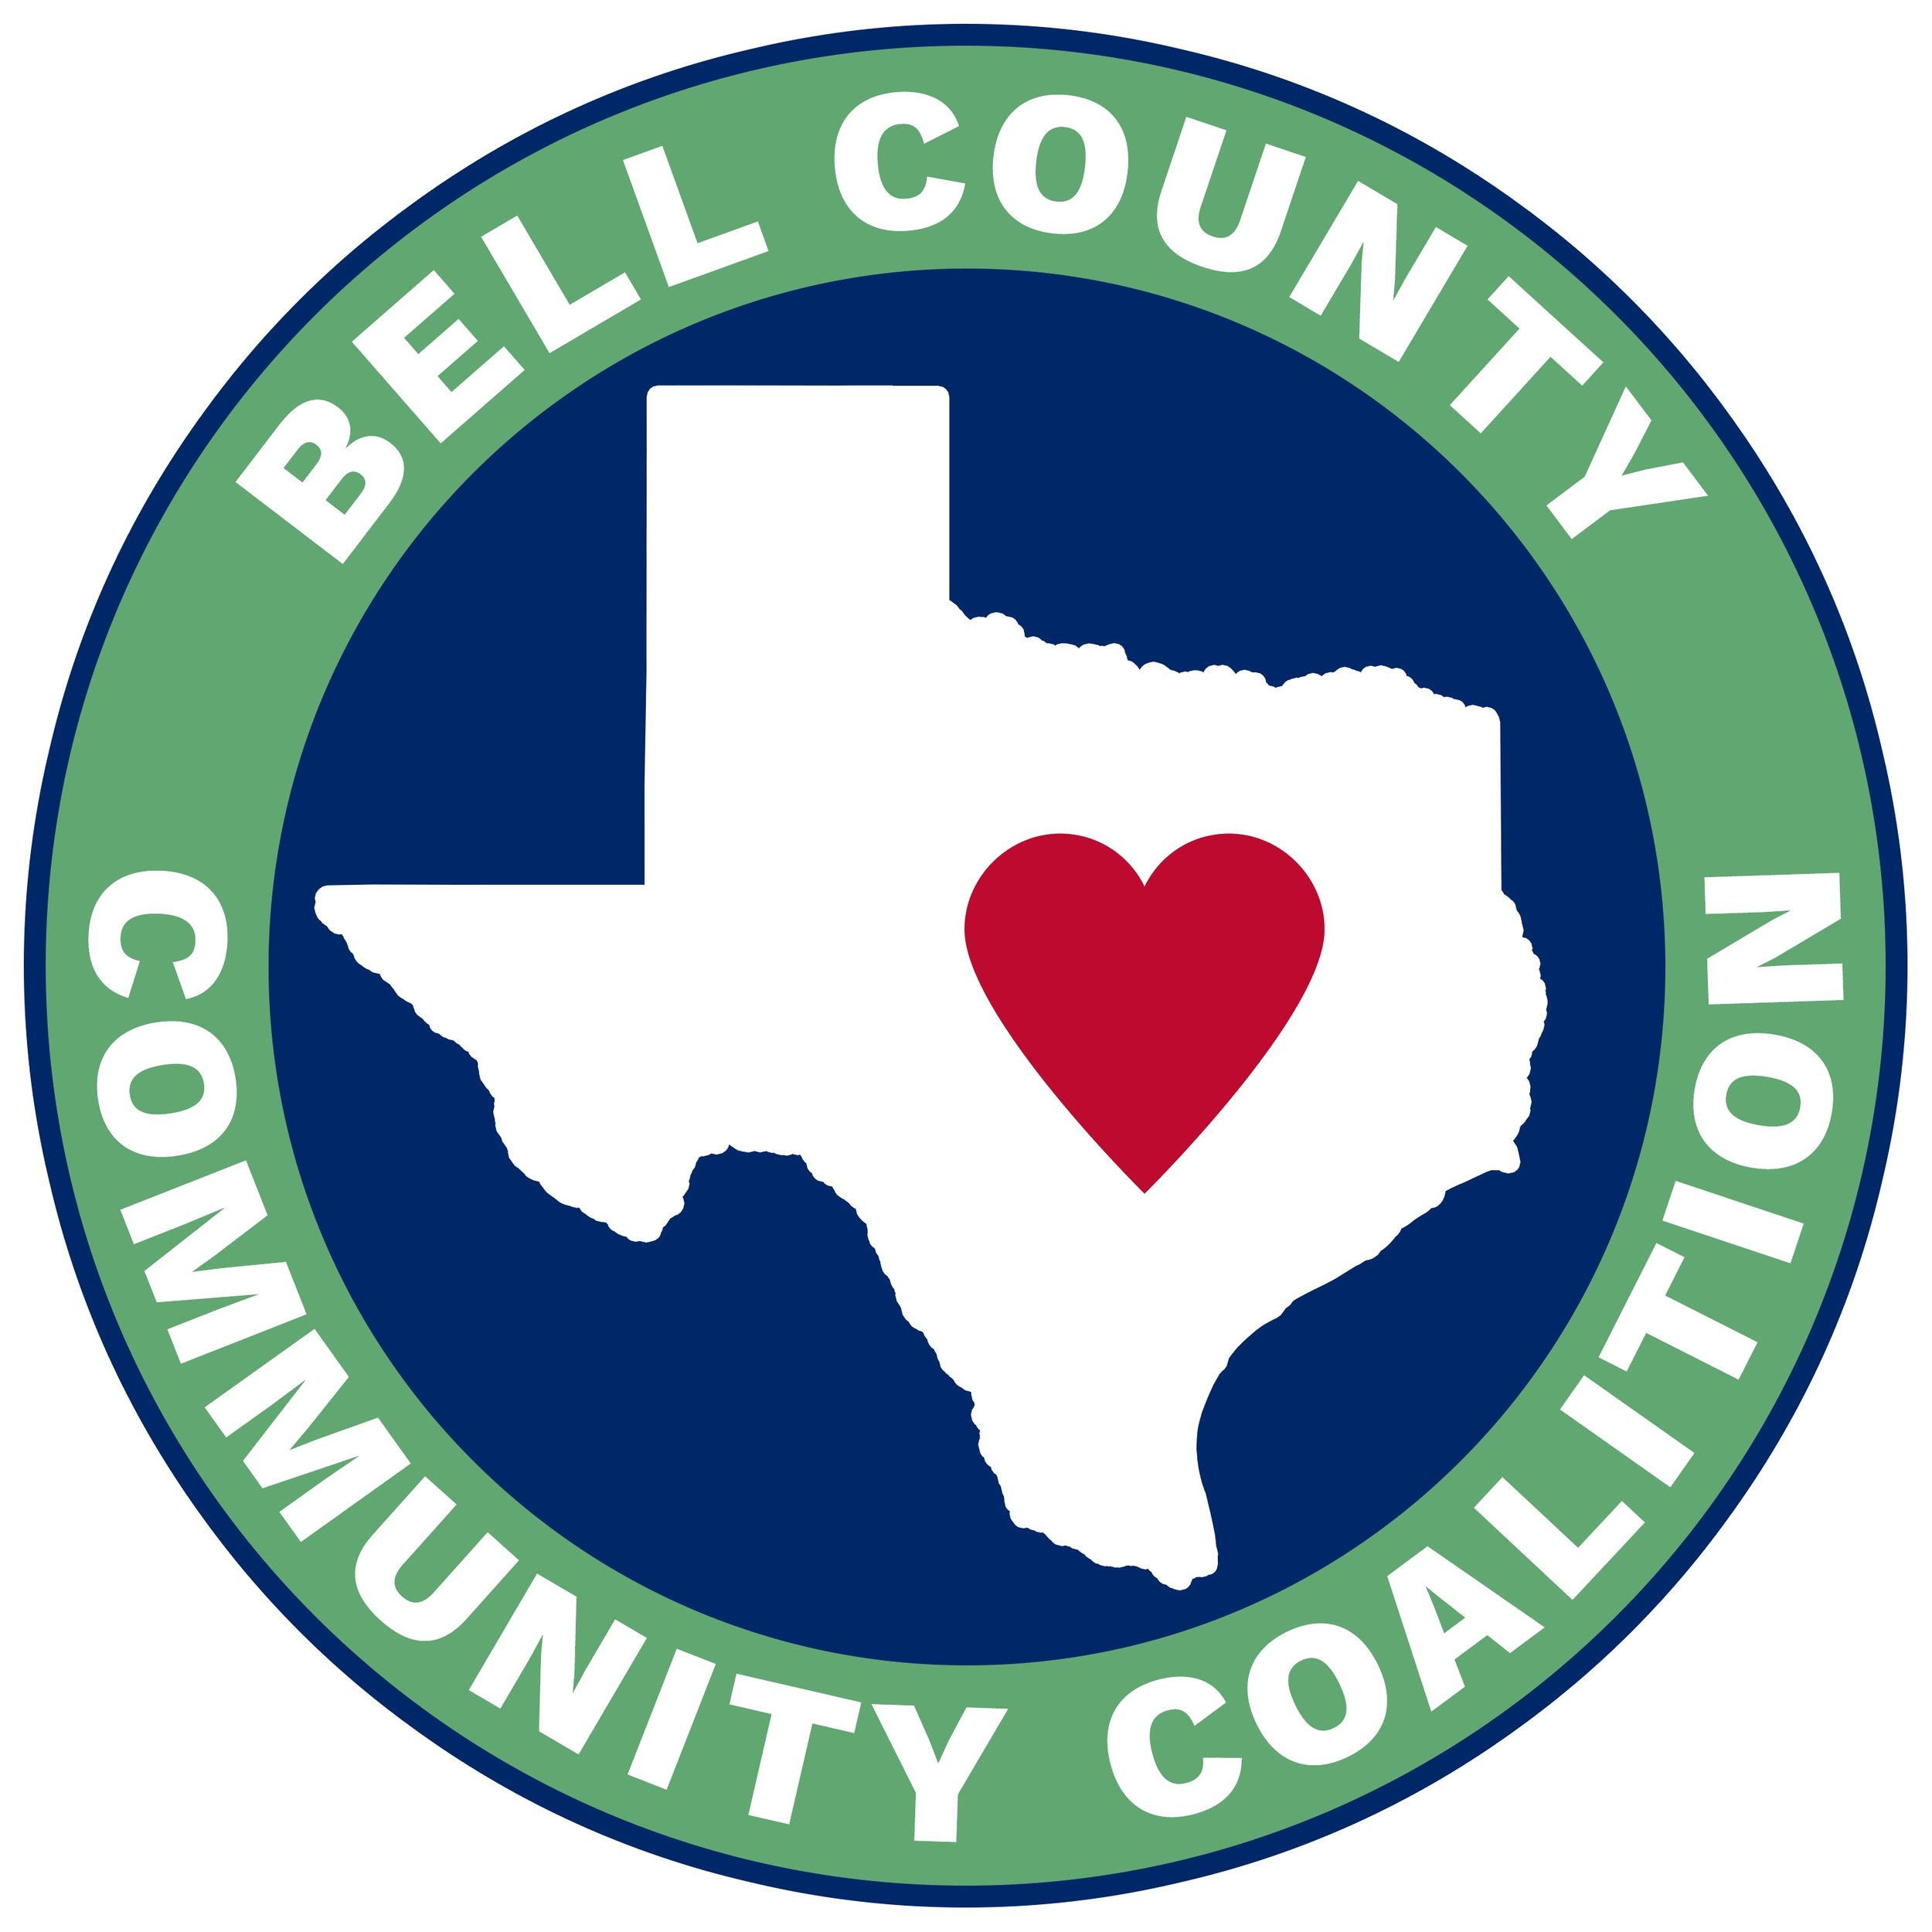 Bell County Community Coalition